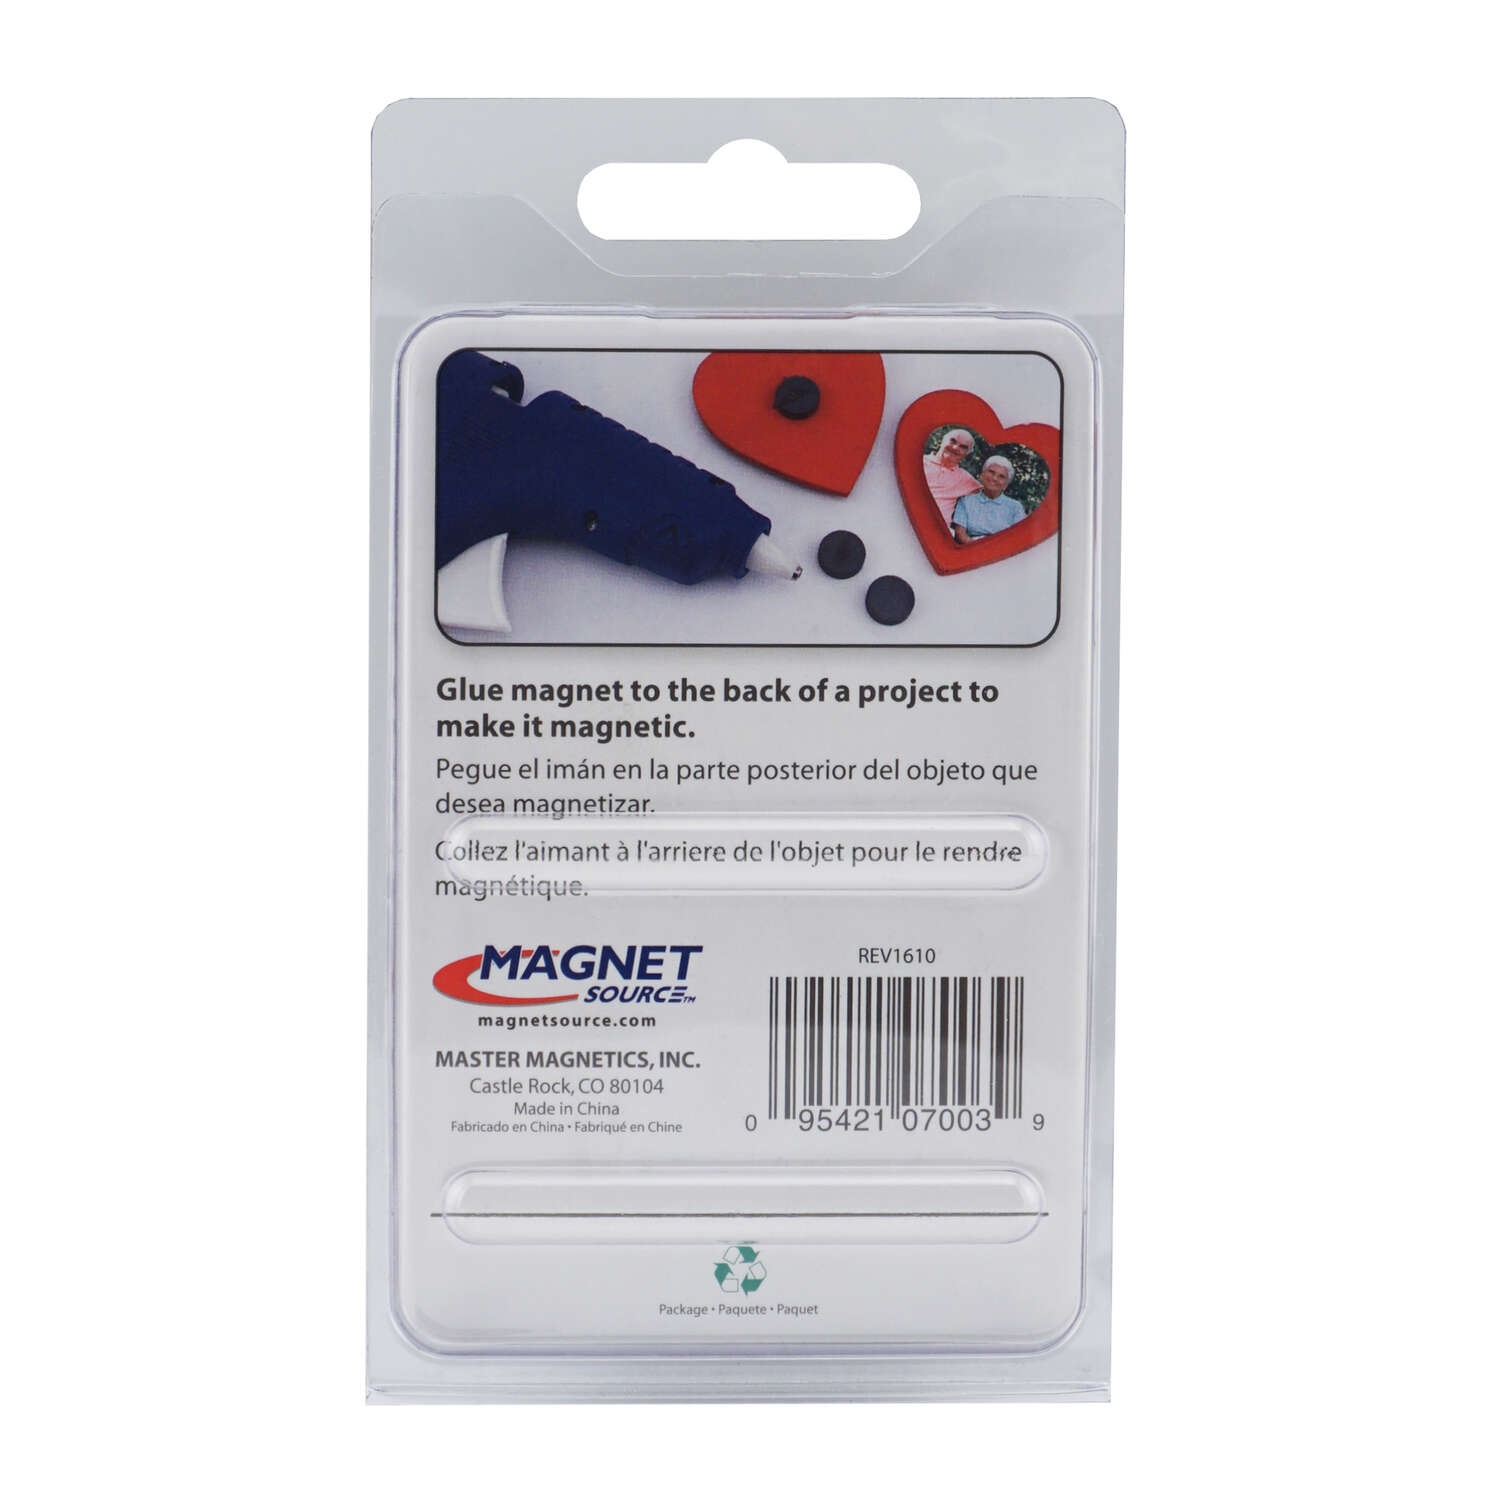 Master Magnetics  The Magnet Source  .197 in. Ceramic  Disc  Disc Magnets  3.5 MGOe Black  0.7 lb. p